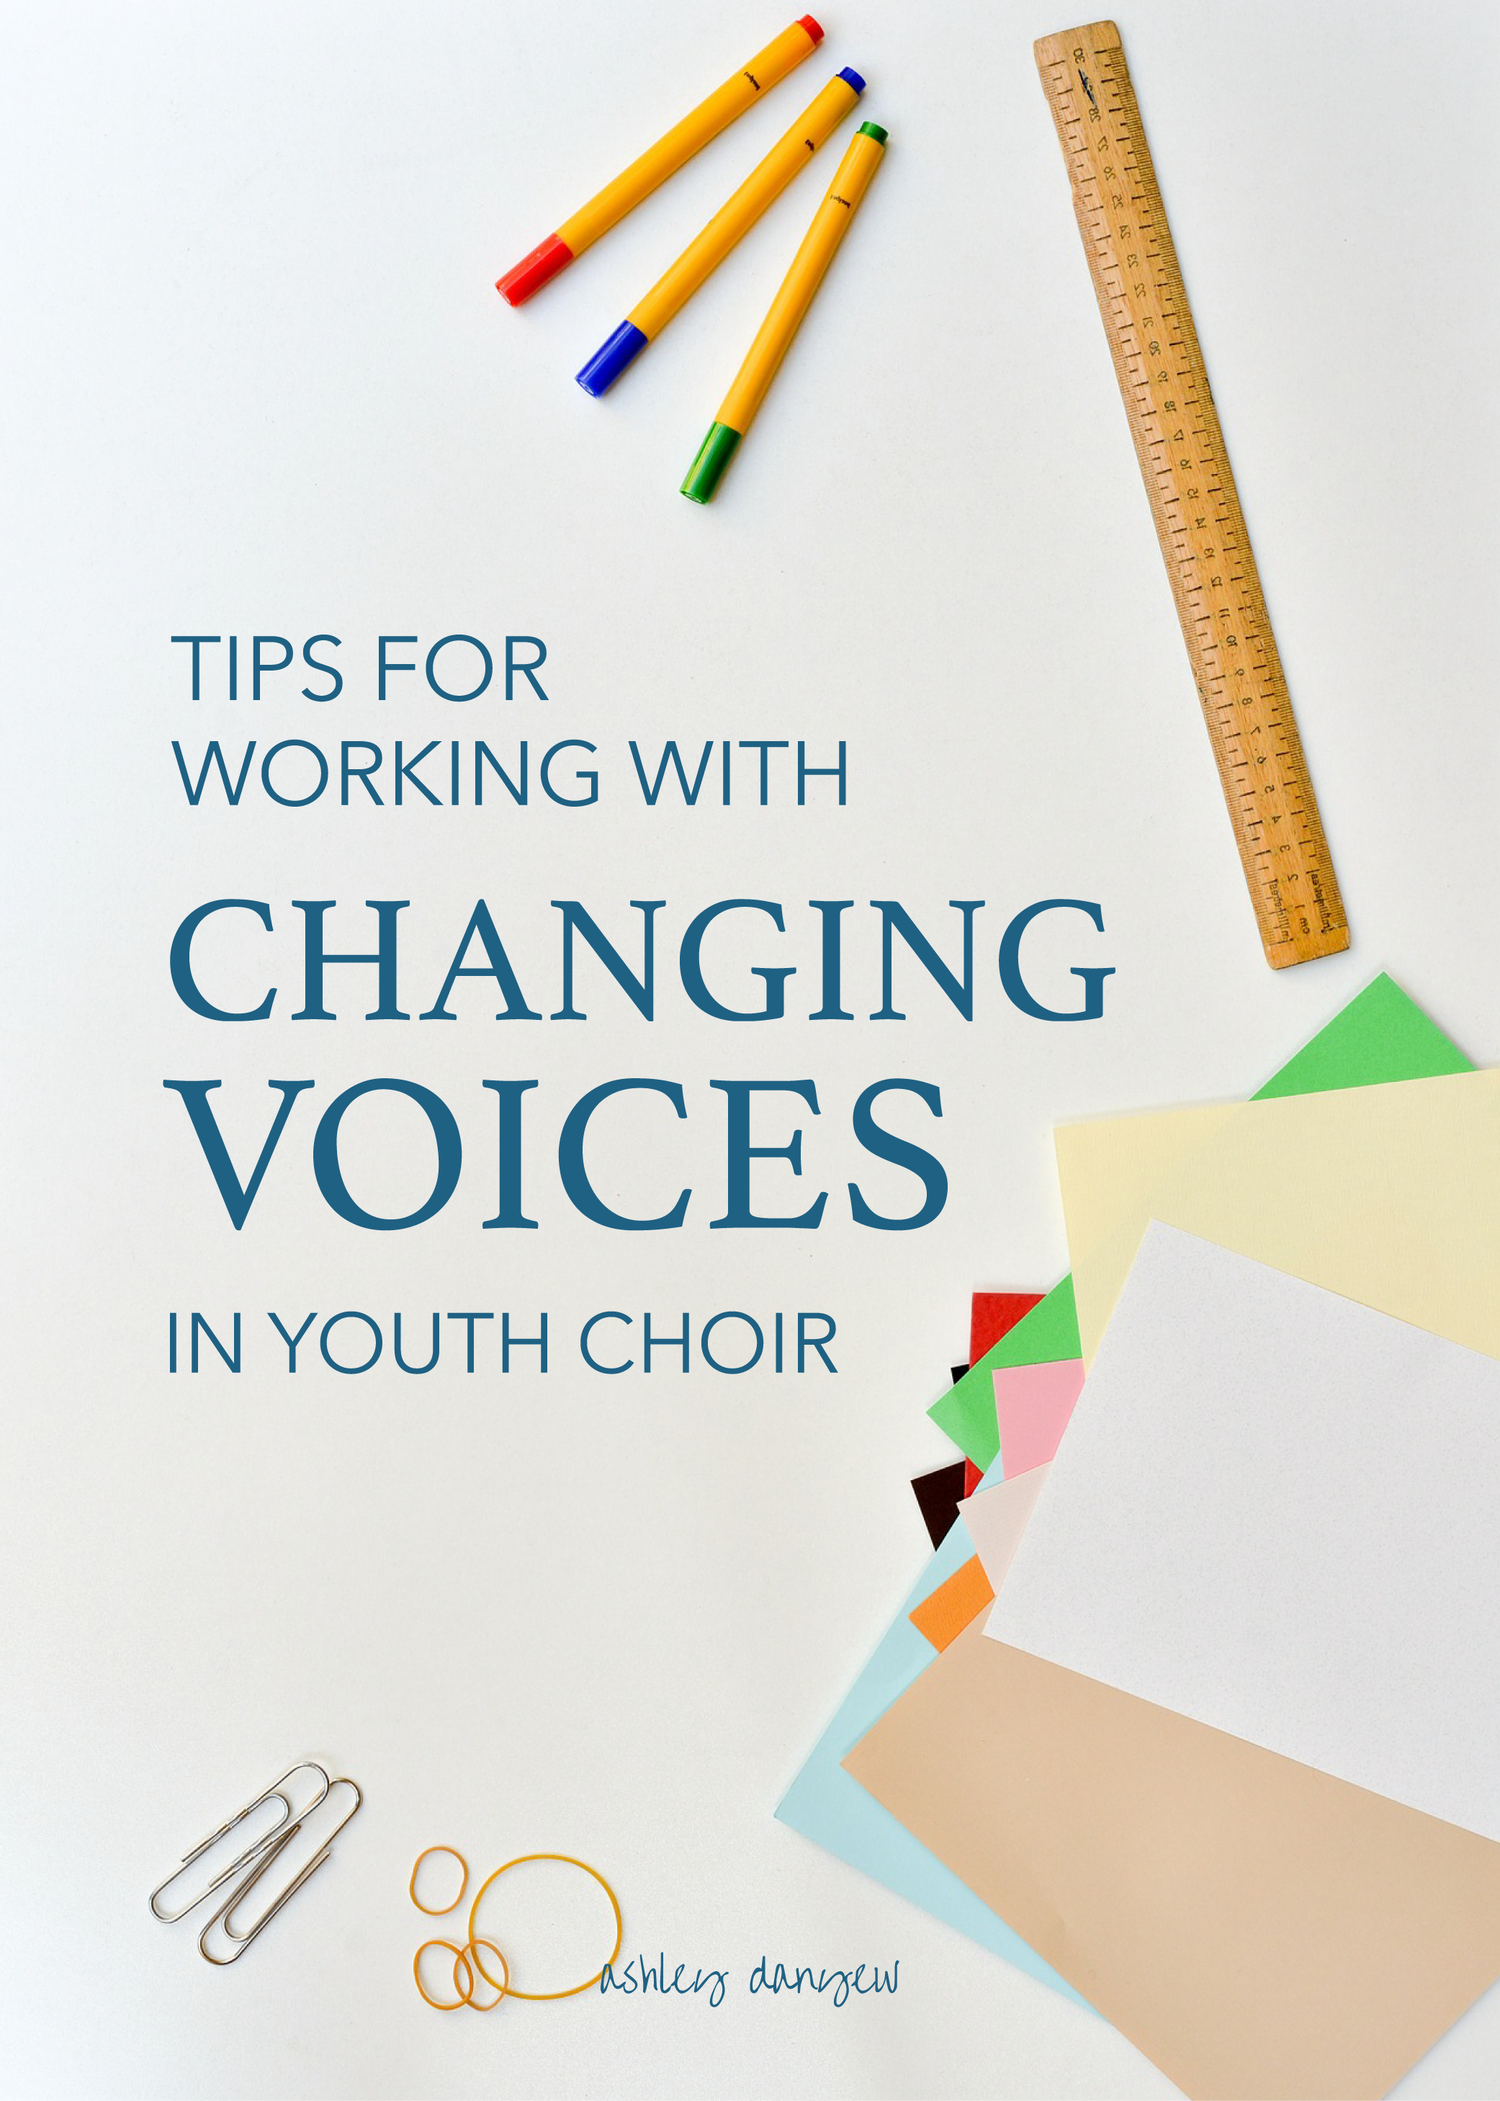 Tips For Working With Changing Voices In Youth Choir